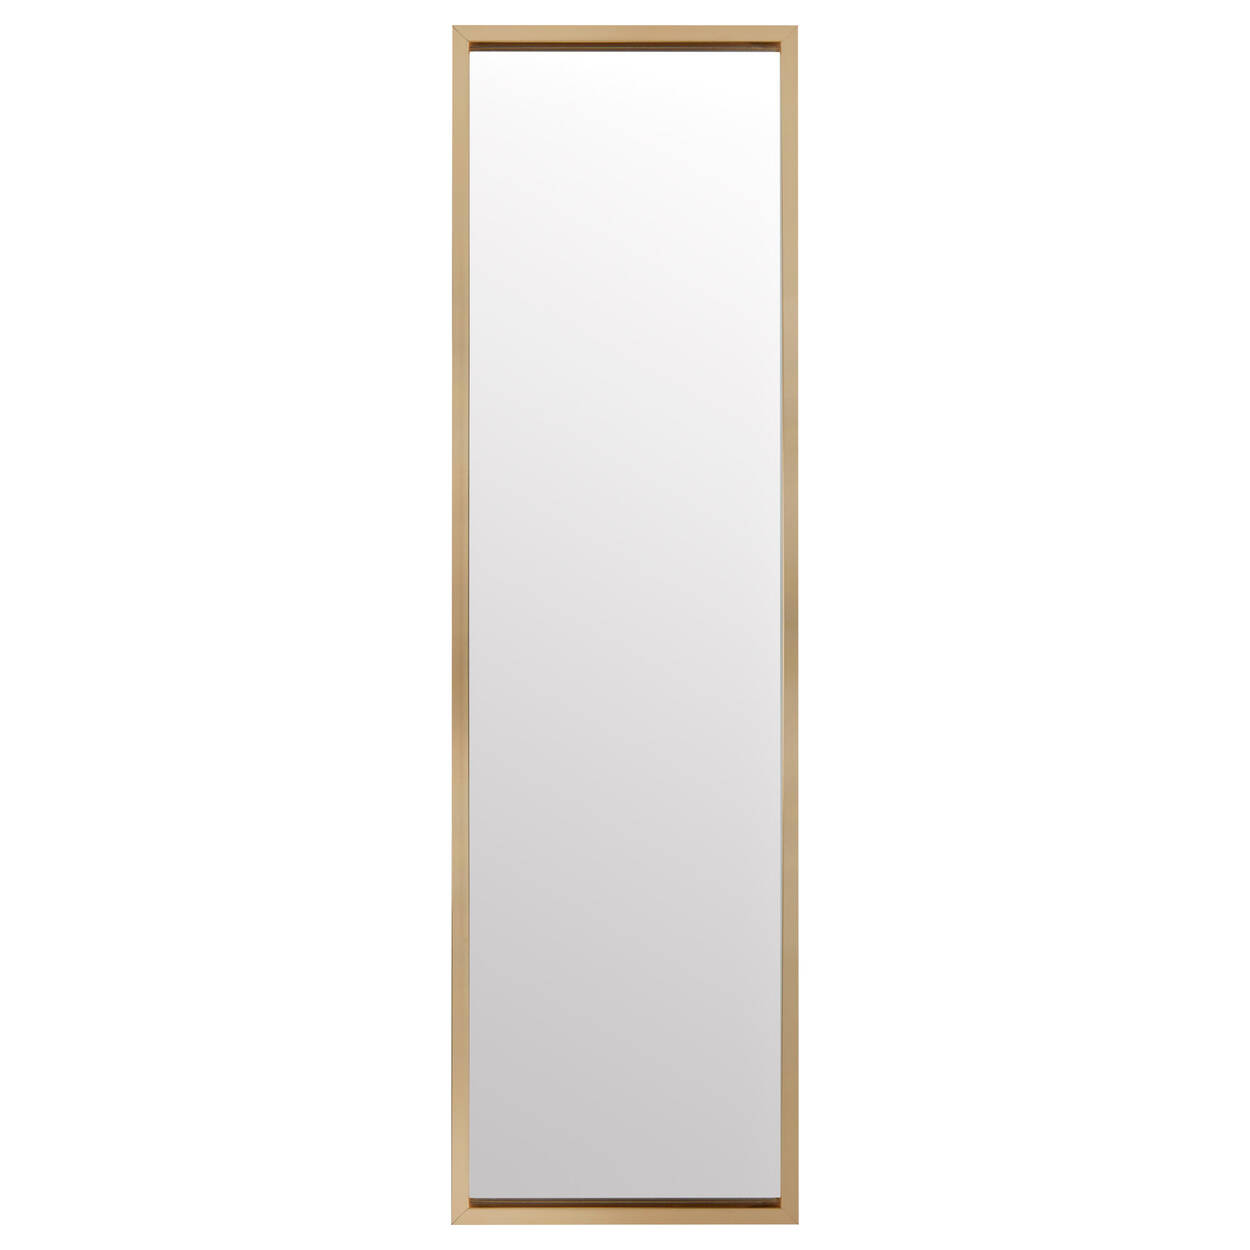 Wooden Mirror with Box Frame